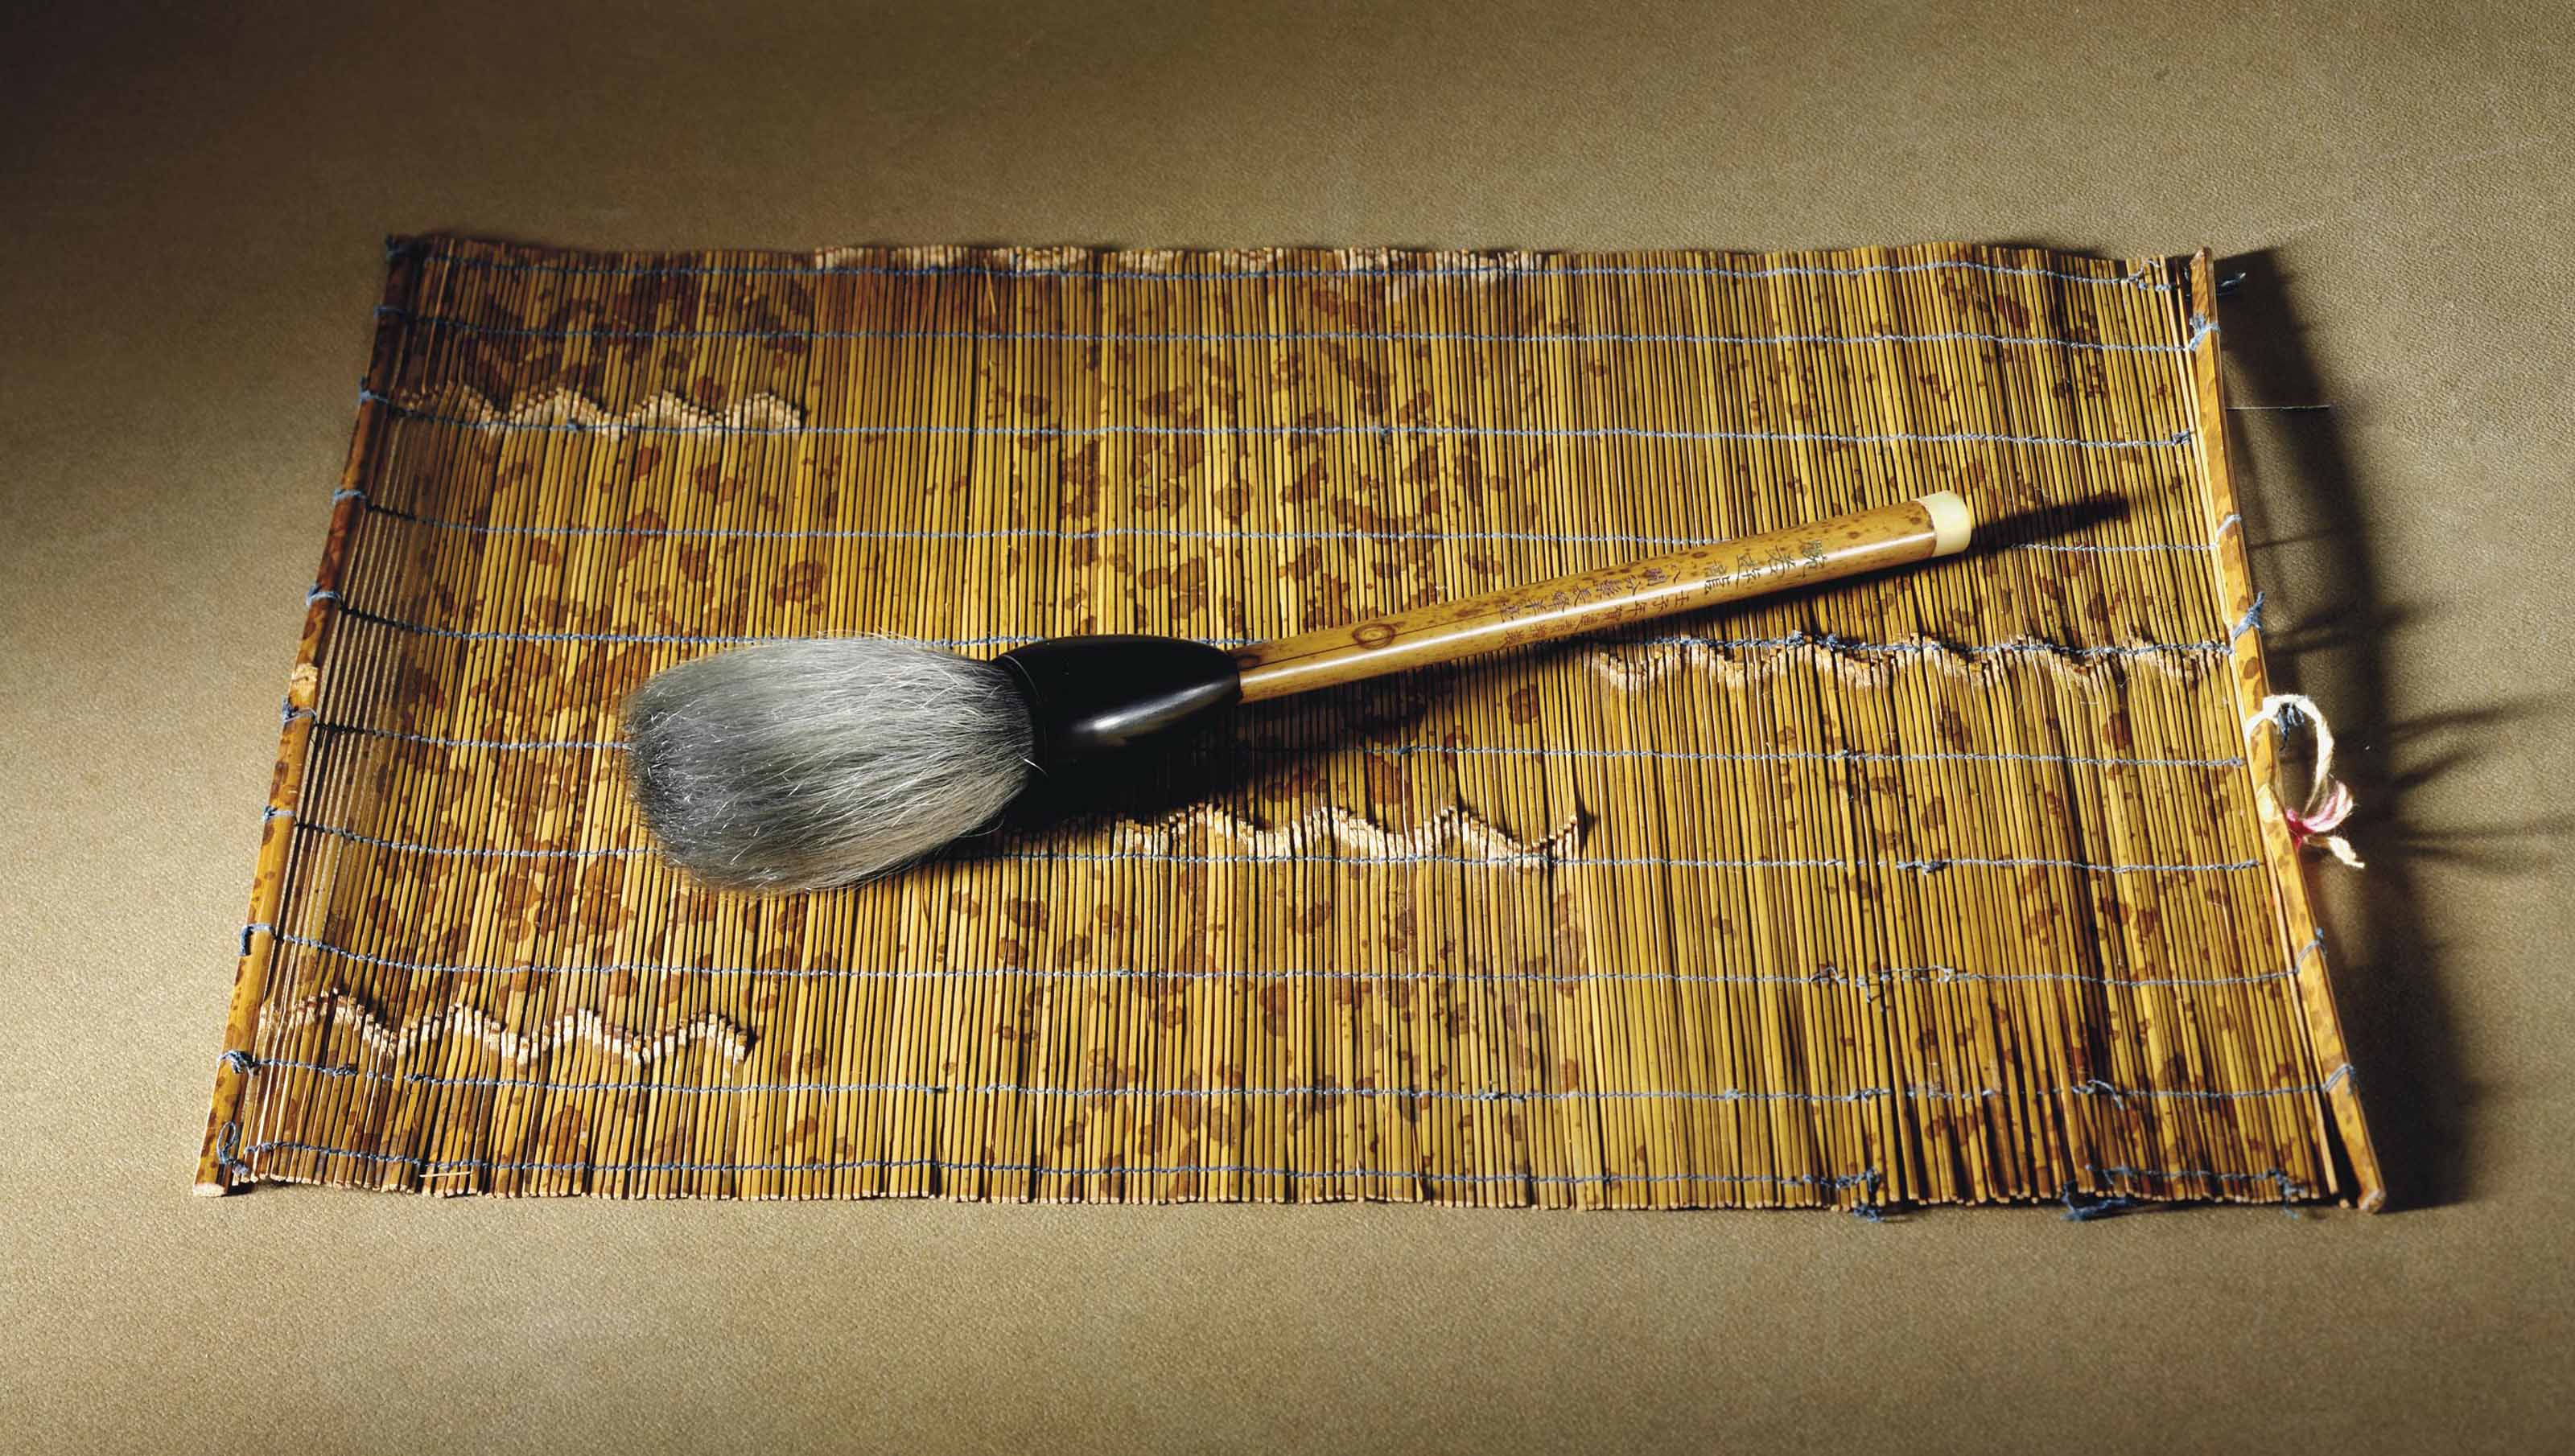 A SPOTTED BAMBOO BRUSH